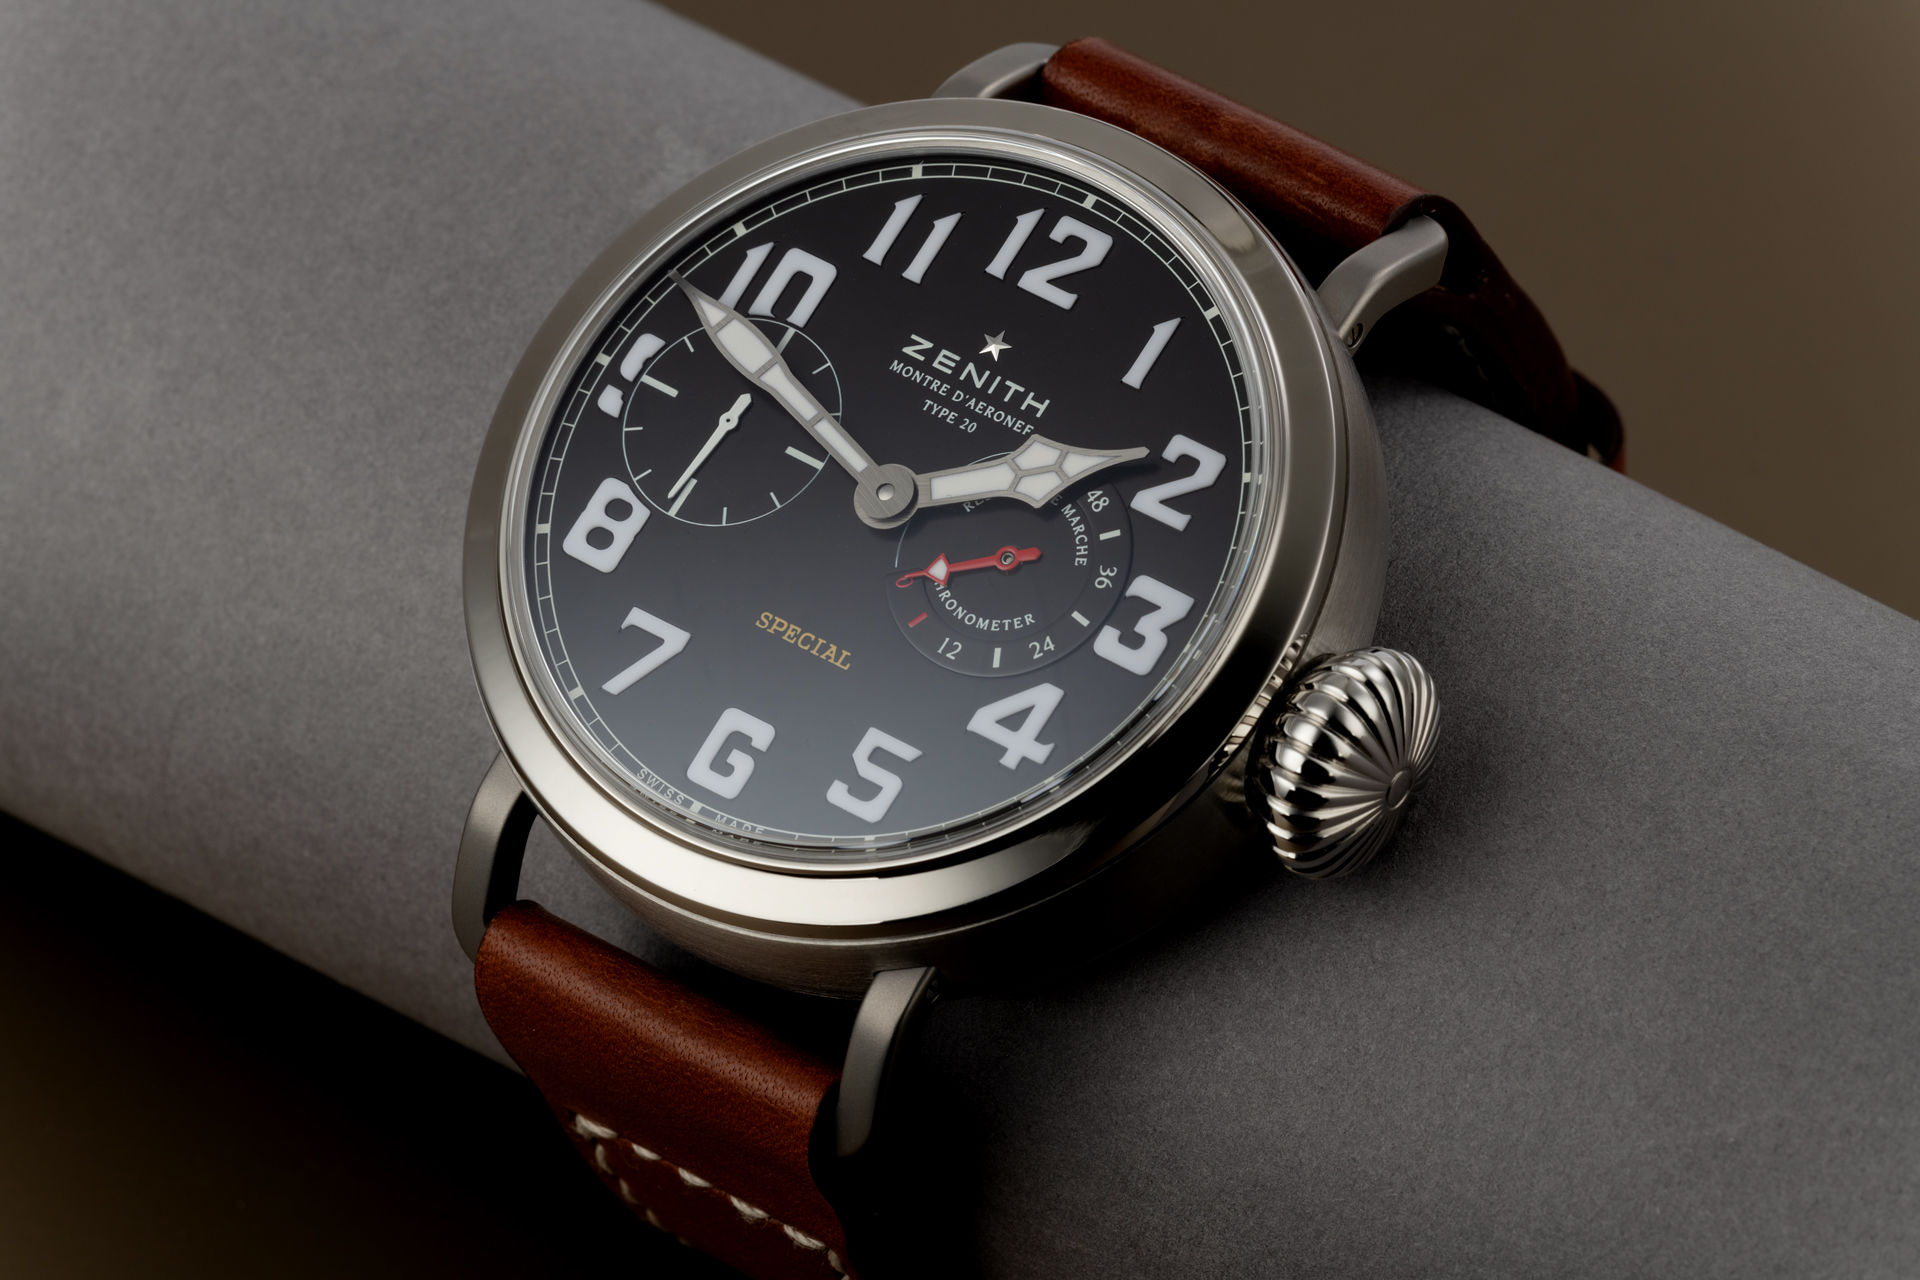 ref 95.2420.5011 | Limited to 250 Pieces | Zenith Type 20 Special Pilots Watch